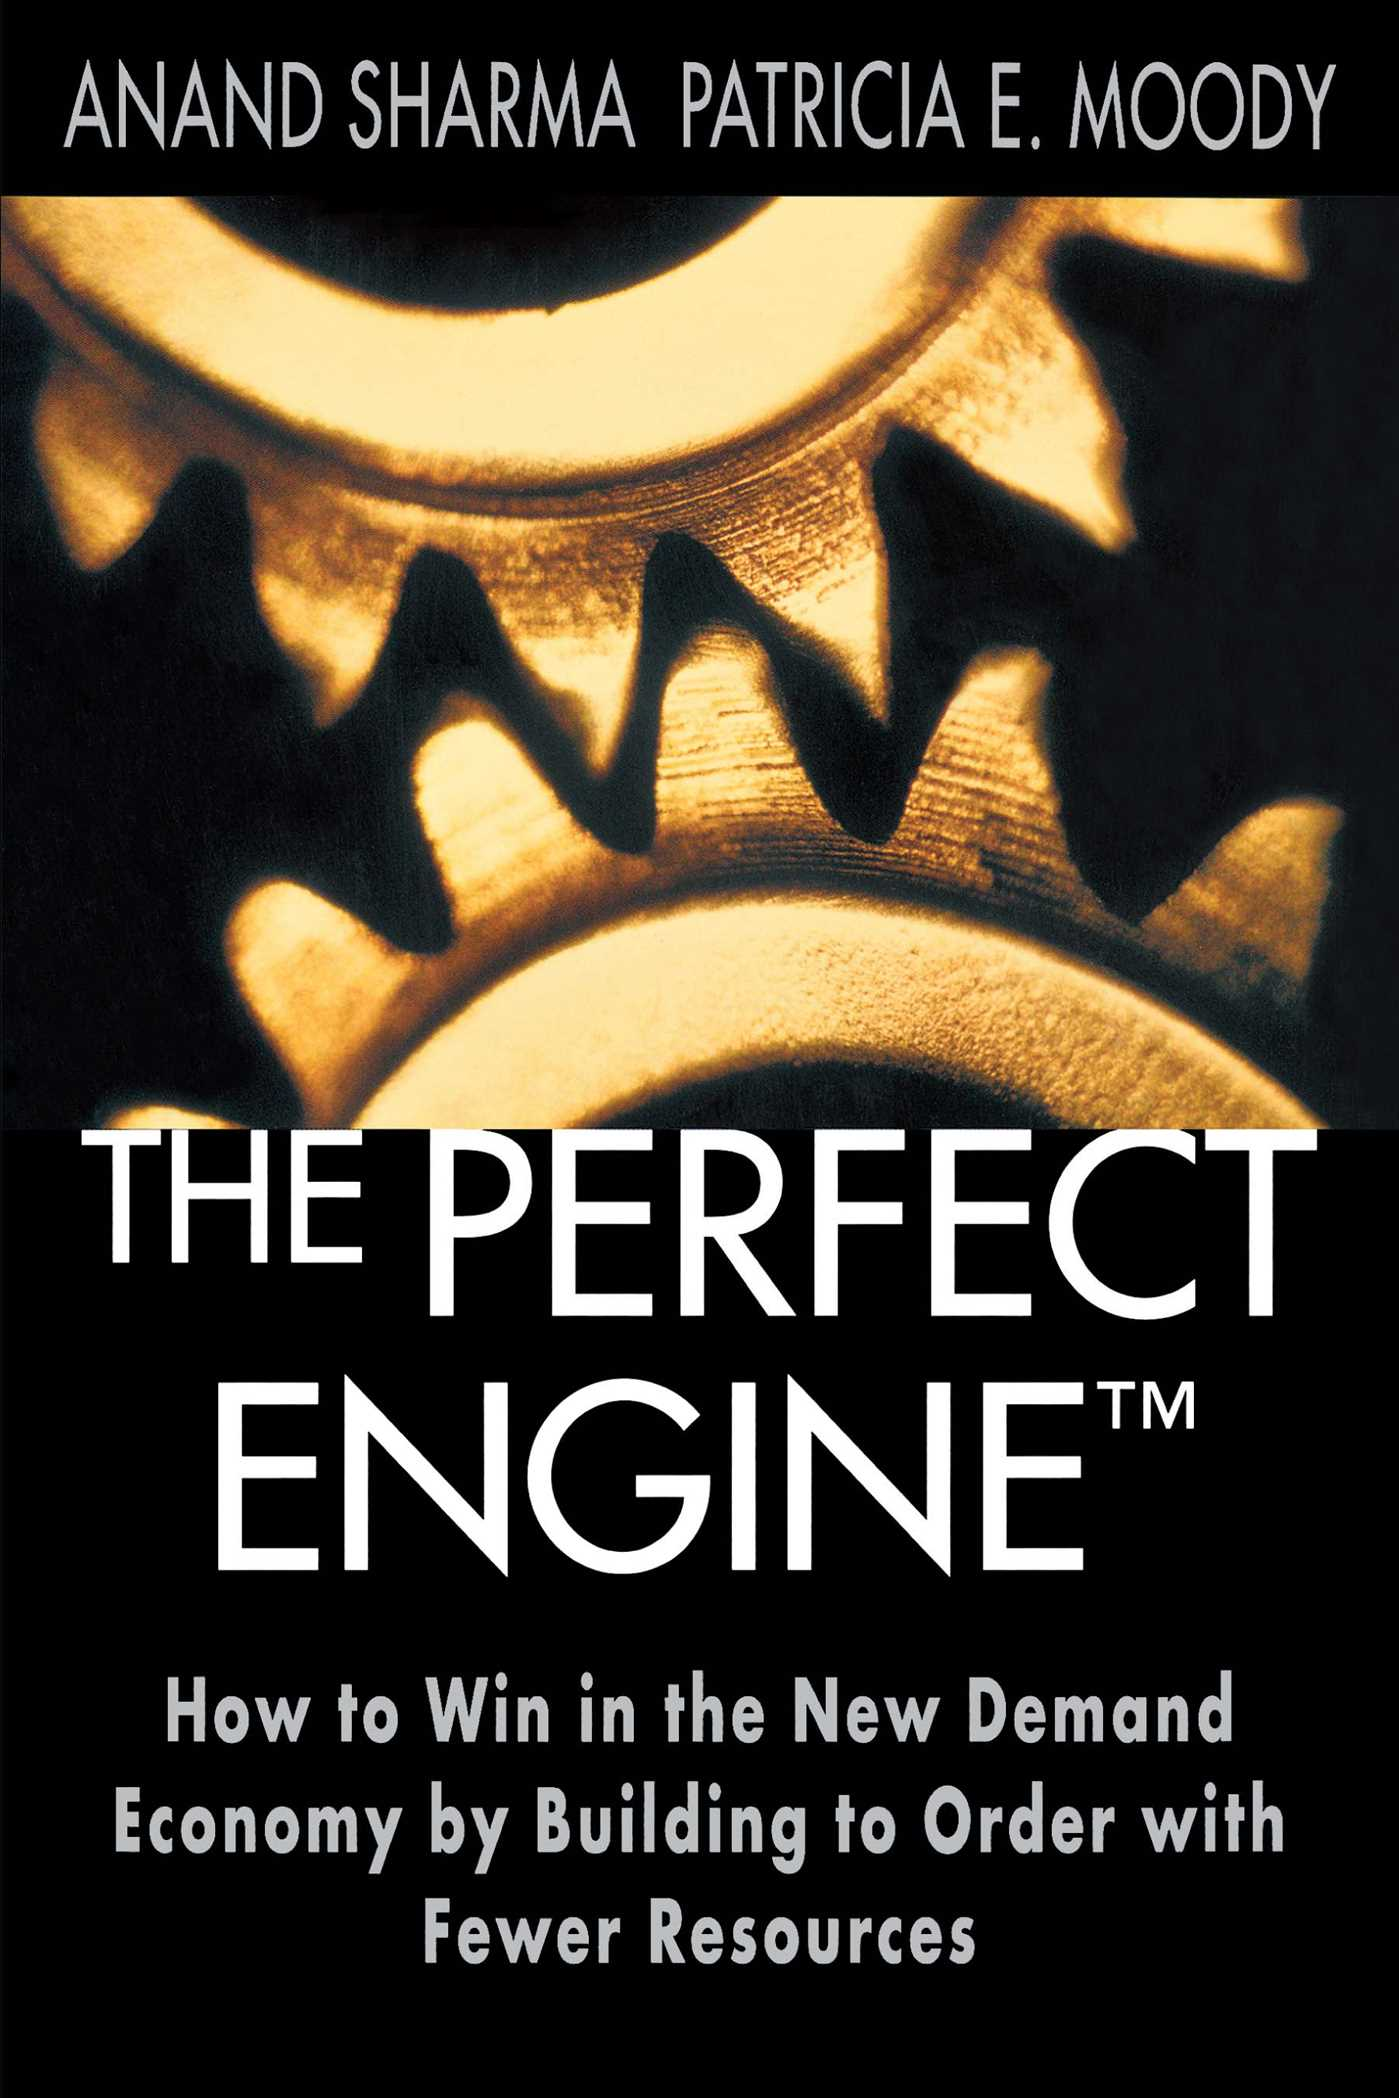 The perfect engine 9781451640854 hr